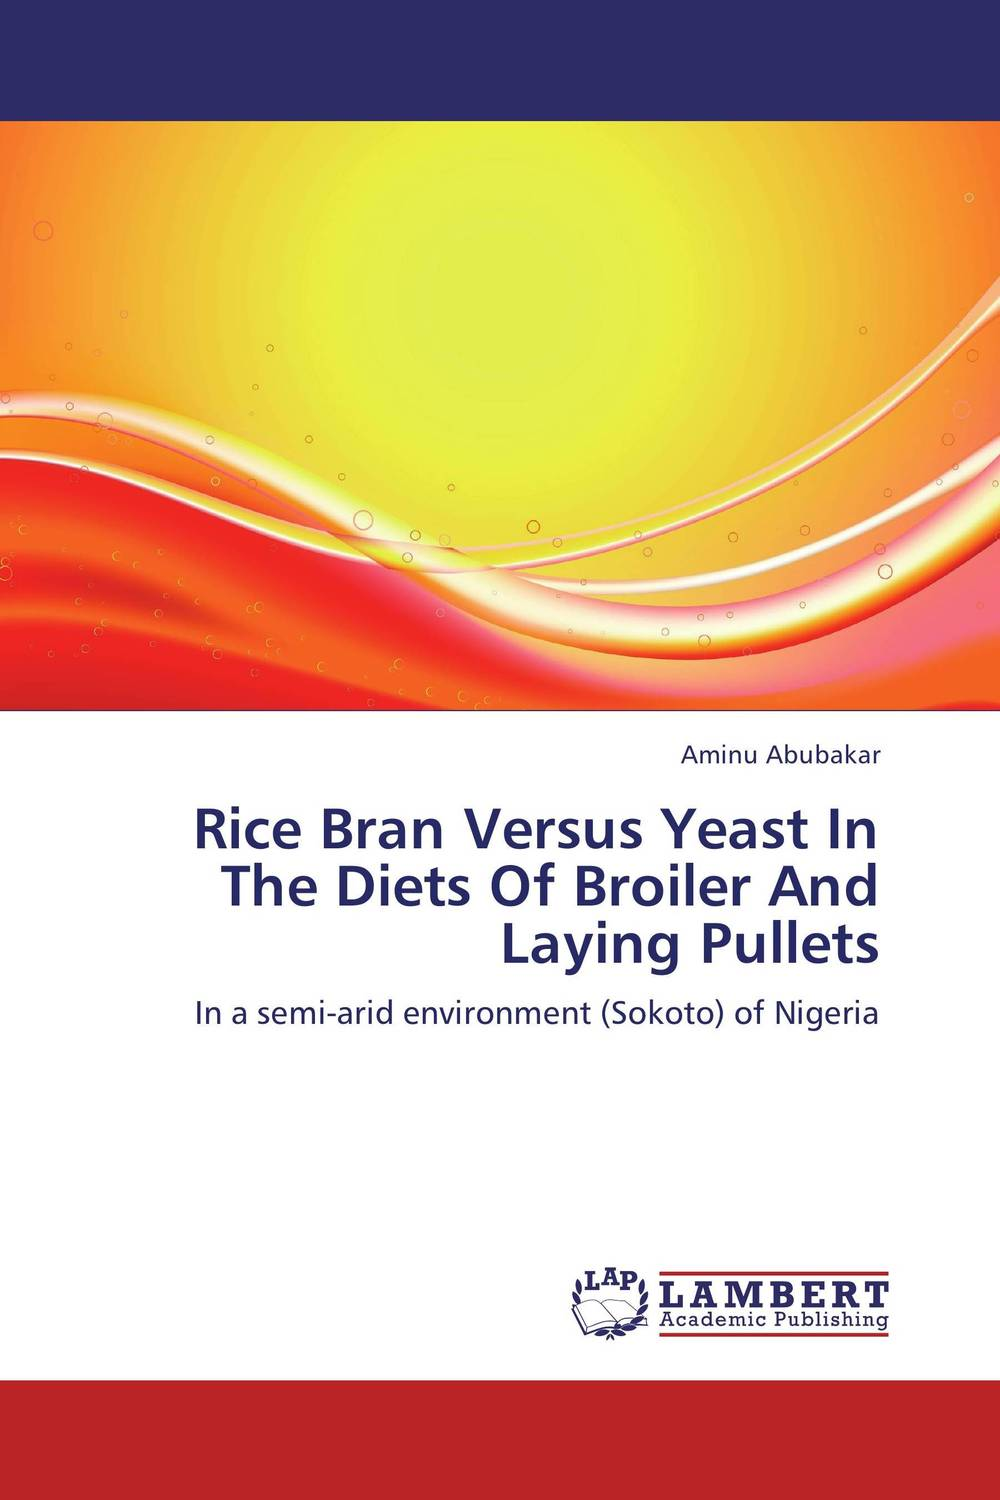 купить Rice Bran Versus Yeast In The Diets Of Broiler And Laying Pullets недорого